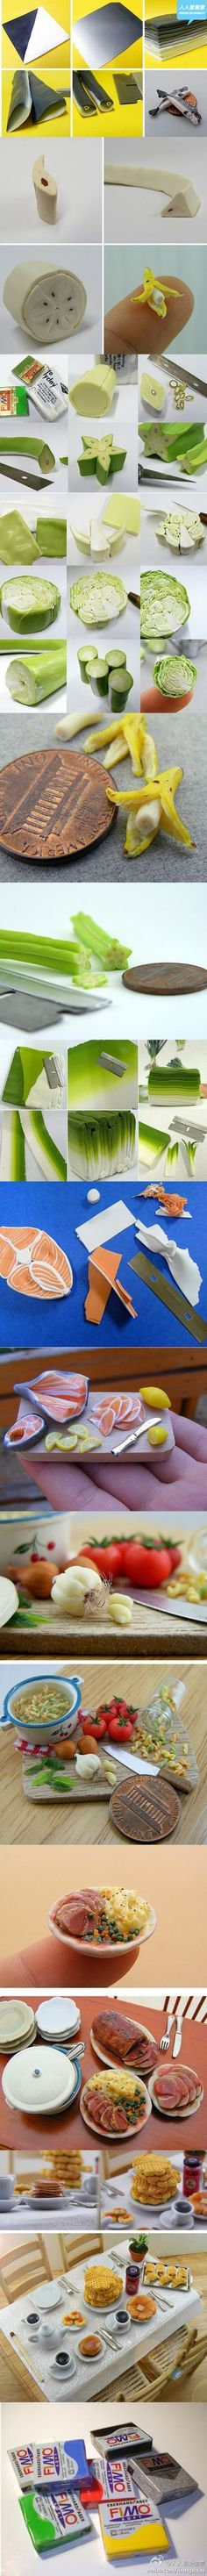 Amazing clay works and gradient colors